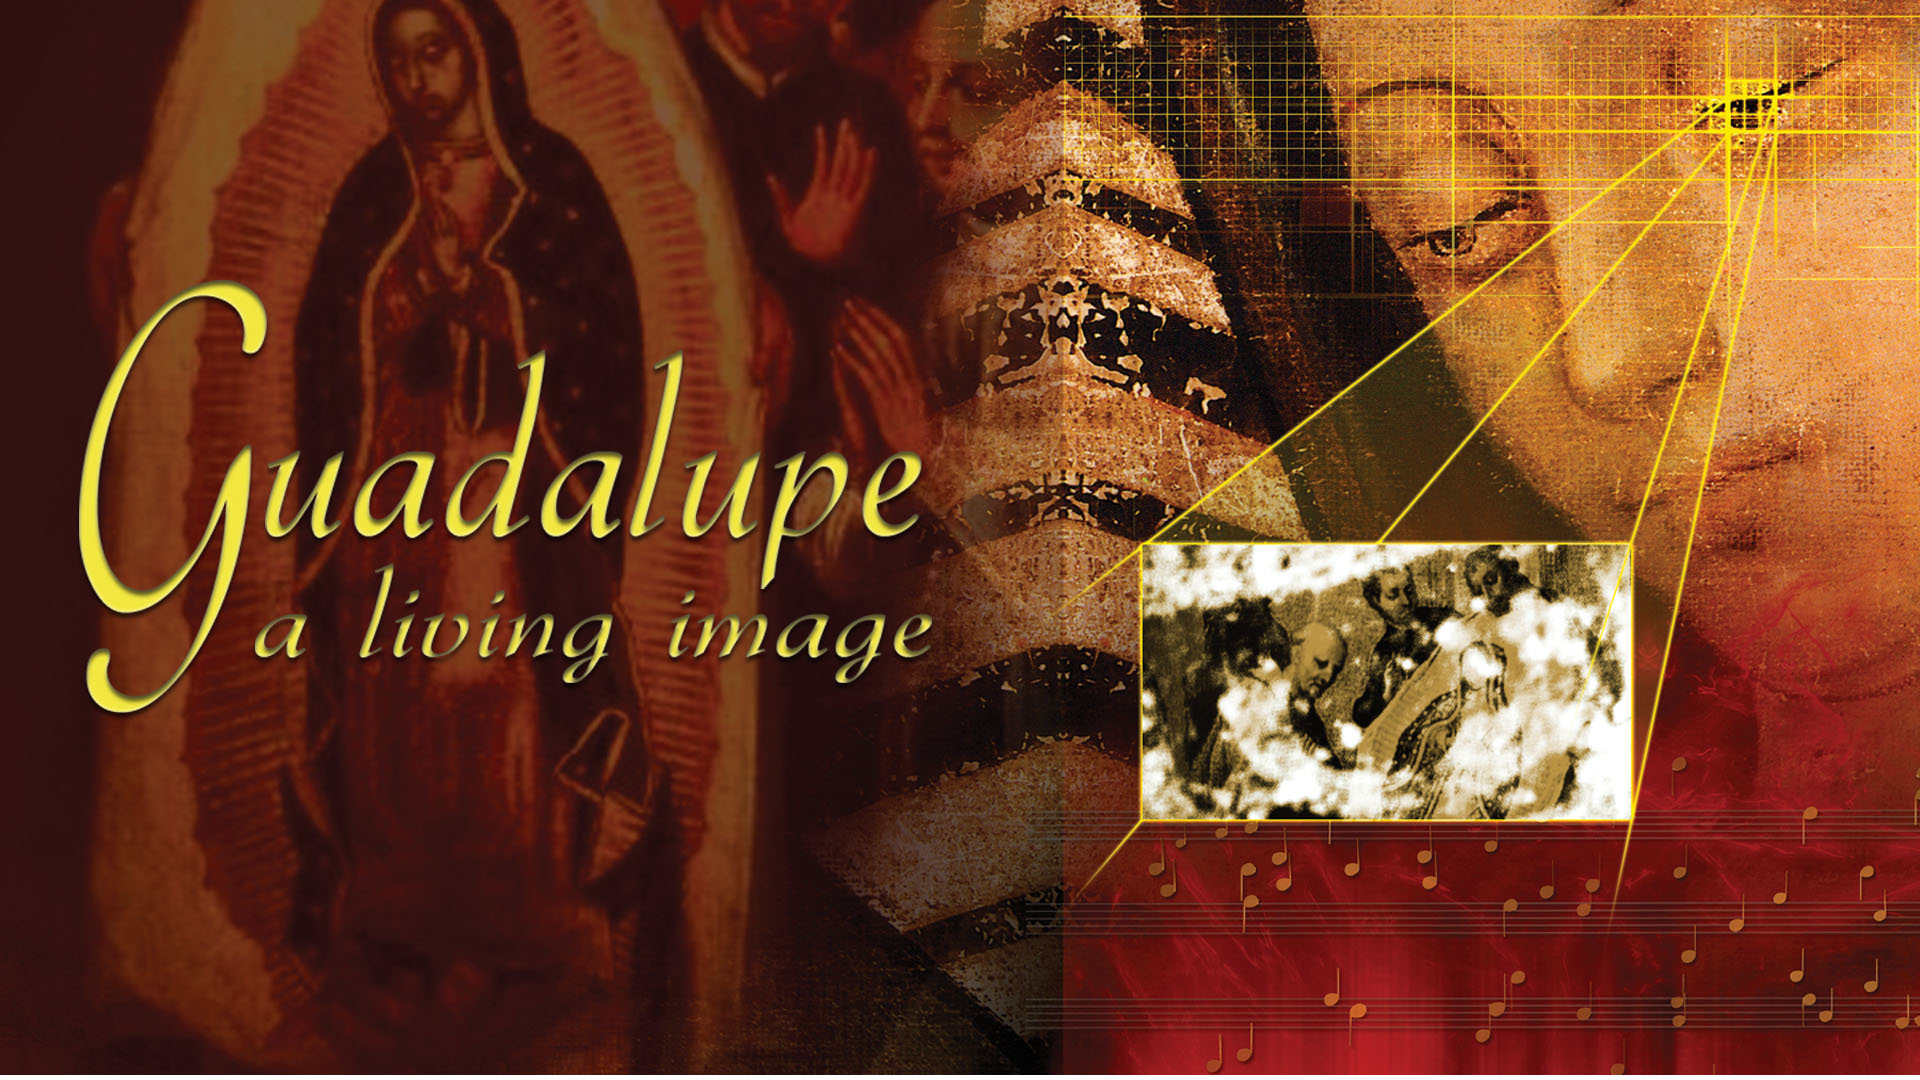 Guadalupe: A Living Image